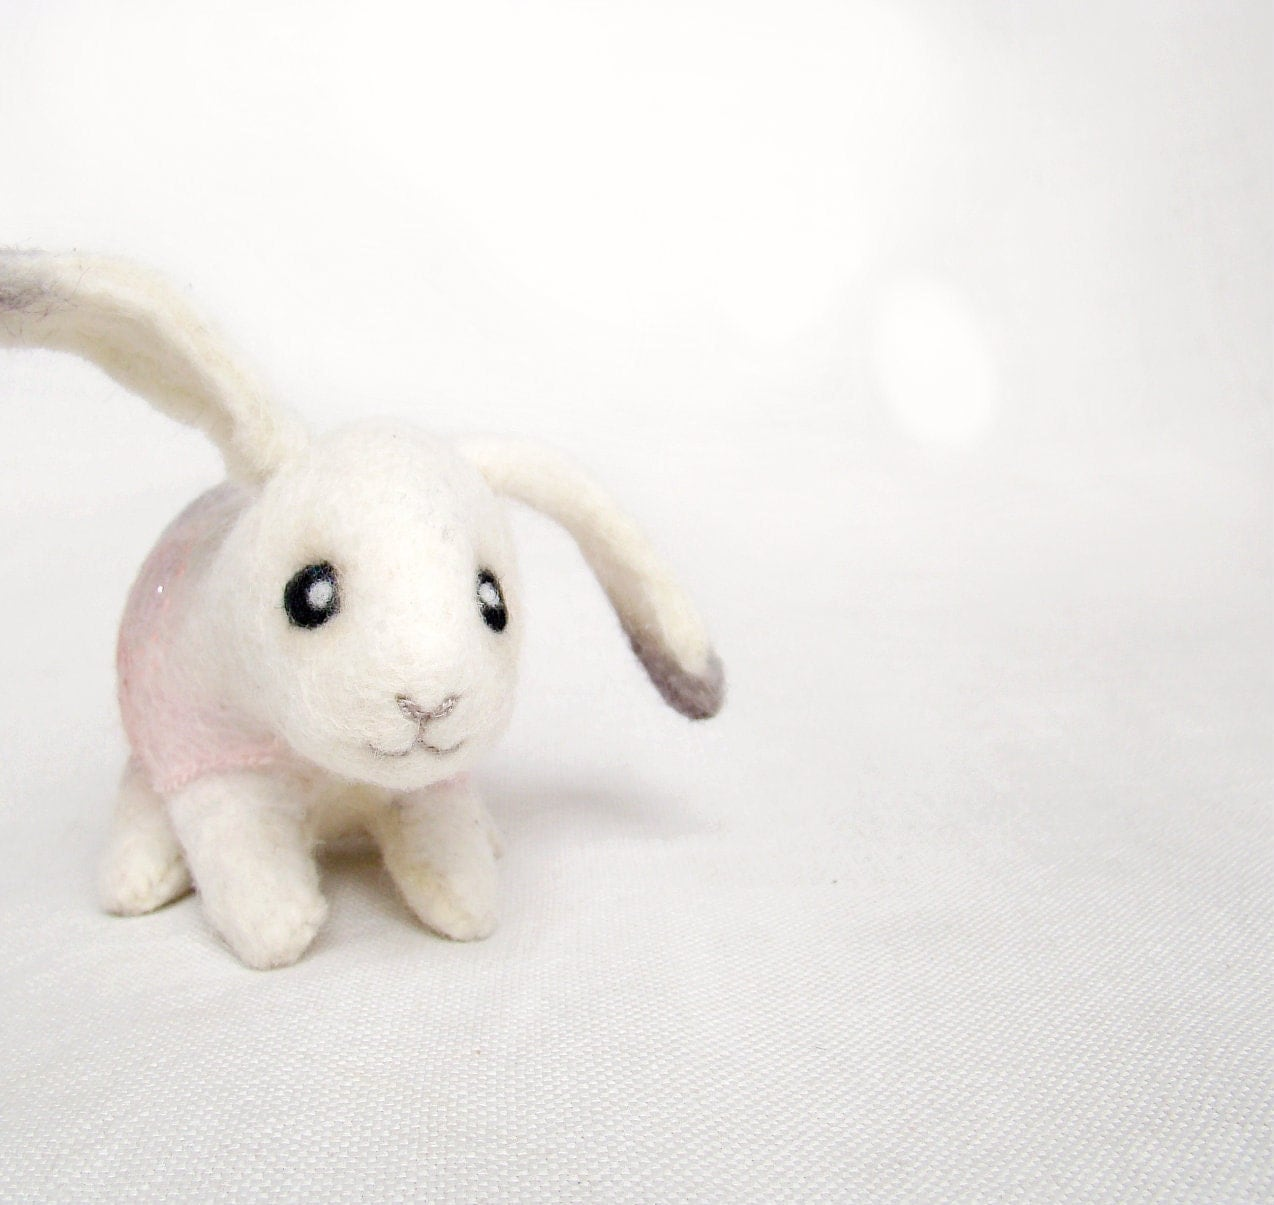 Milena - Little Easter Bunny. Art Toy. Handmade Felted Hare Stuffed, mteam. white pink grey gray pastel neutral. MADE TO ORDER. - TwoSadDonkeys